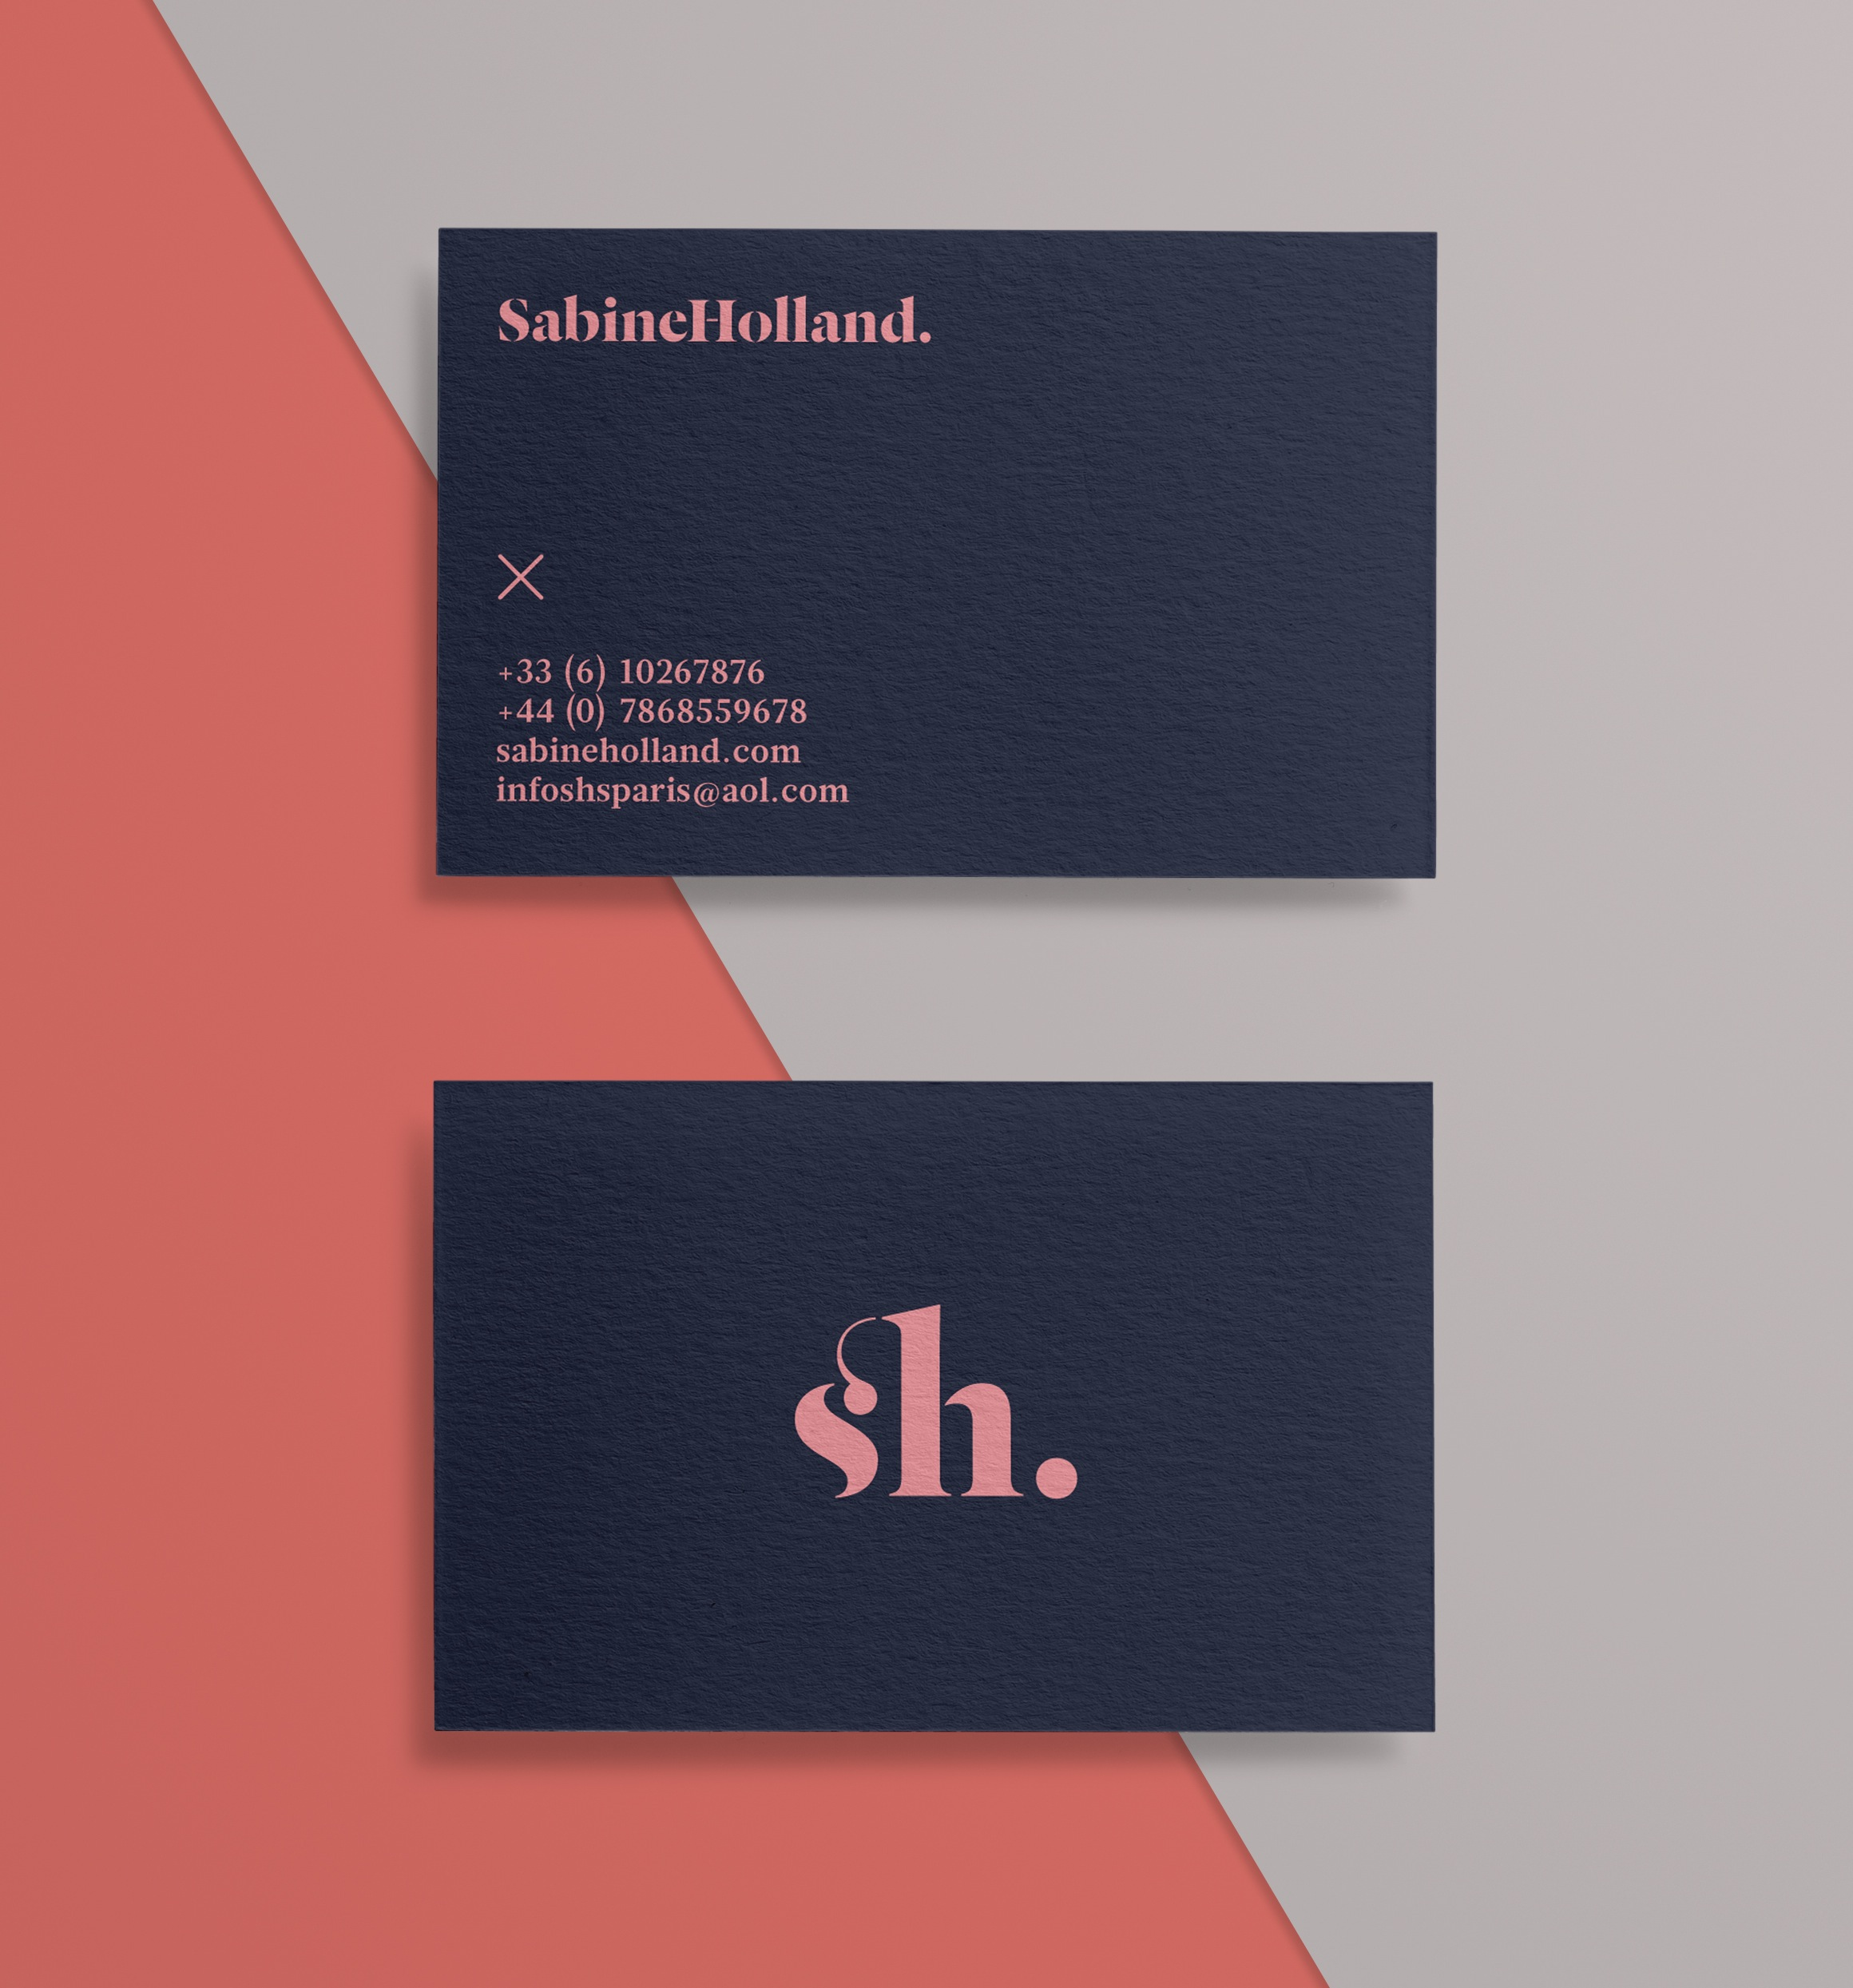 23 Fashion Business Cards - Free PSD, AI, Vector, EPS Format Business cards for fashion industry